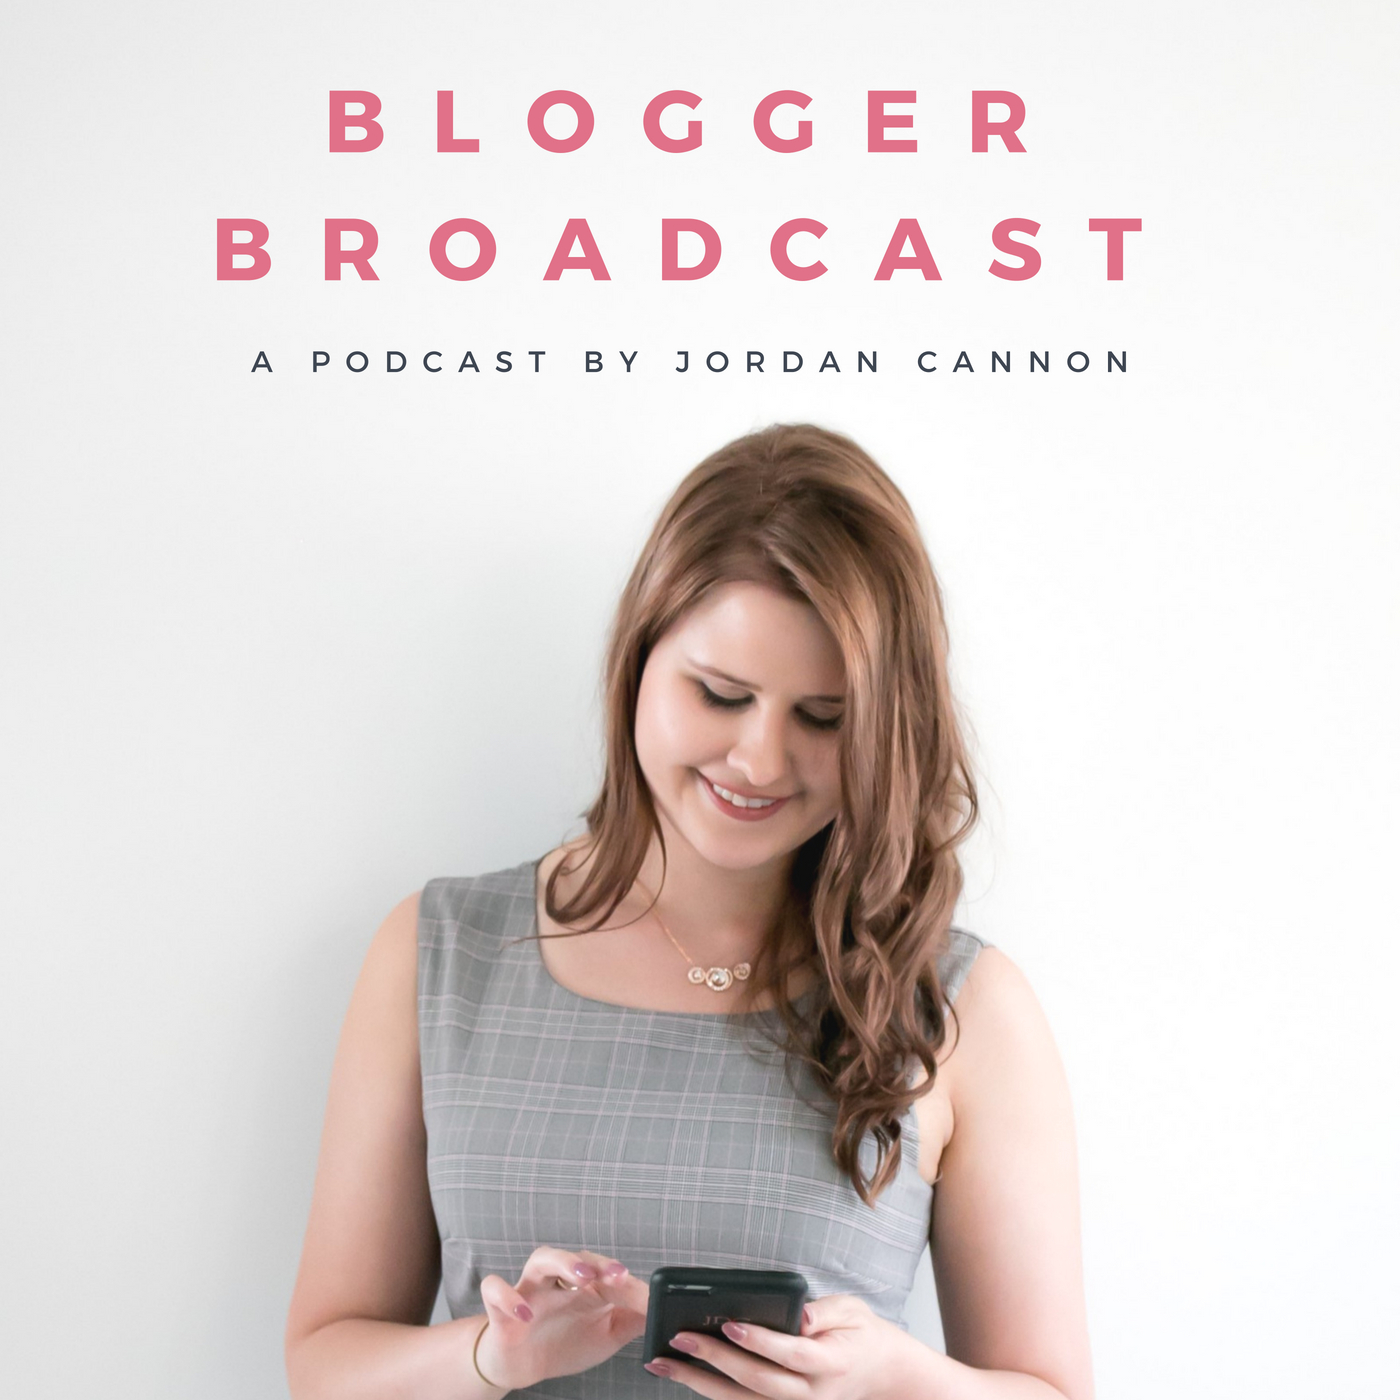 BLOGGER BROADCAST PODCAST